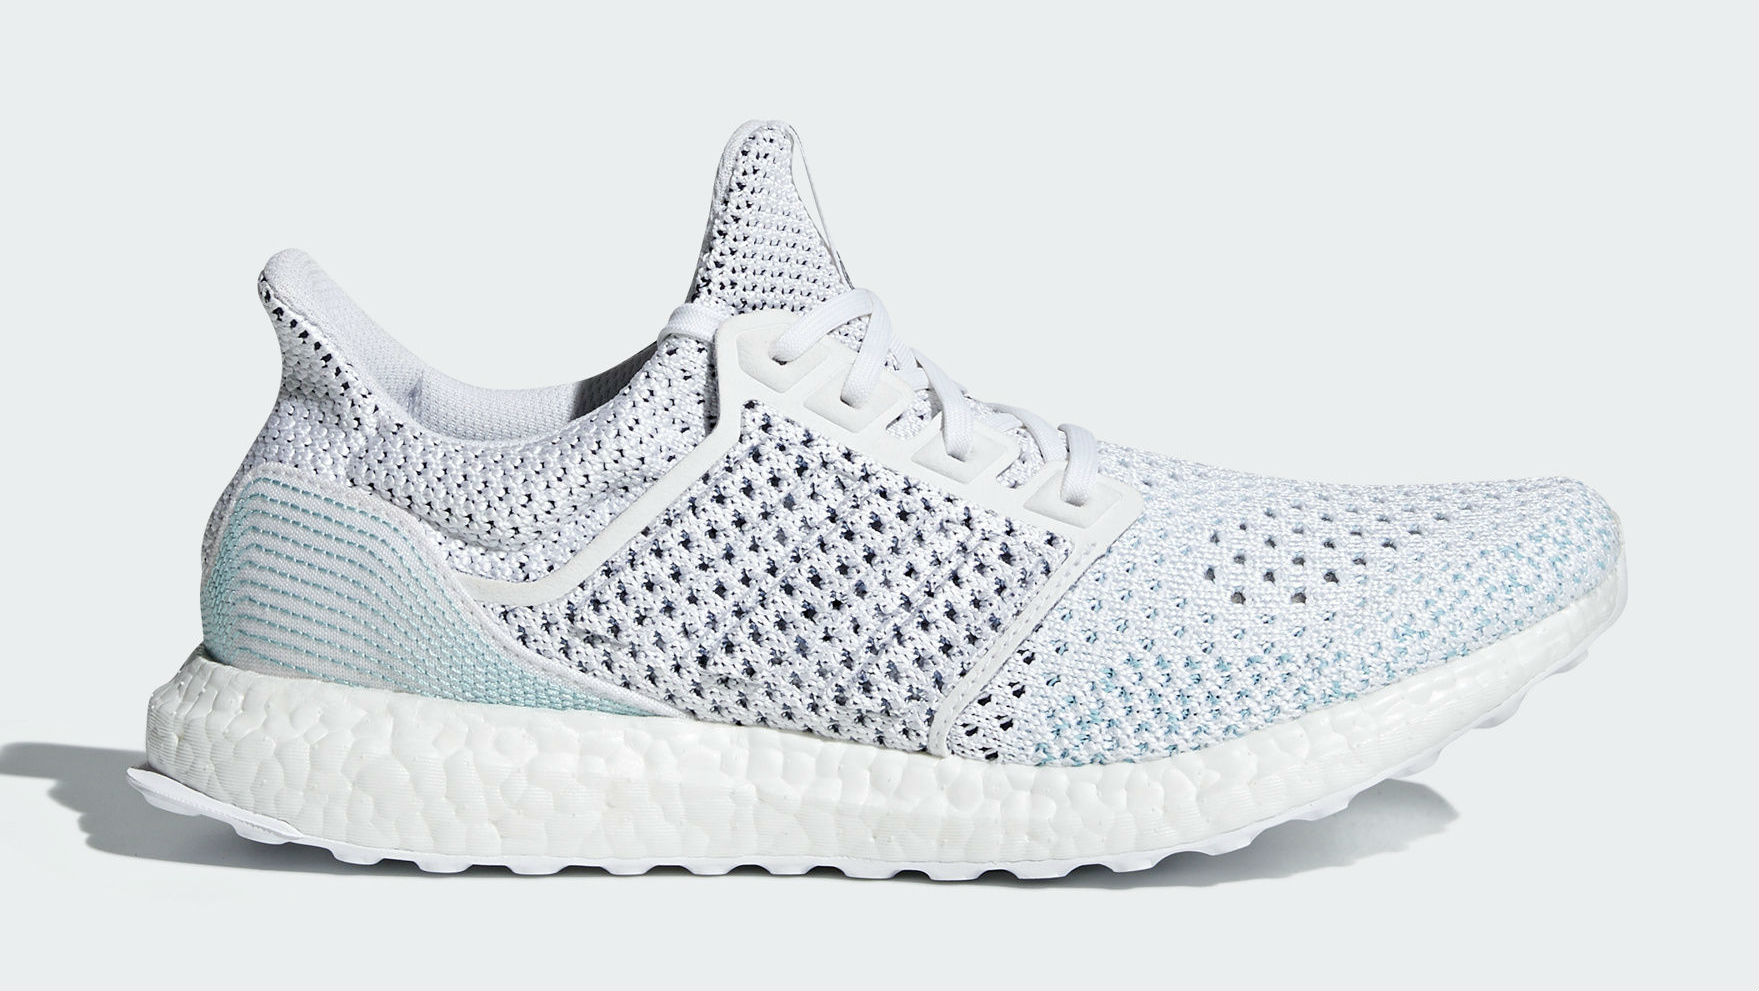 Adidas and Parley Are Teaming Up for Another Ultra Boost Made With Recycled Plastic